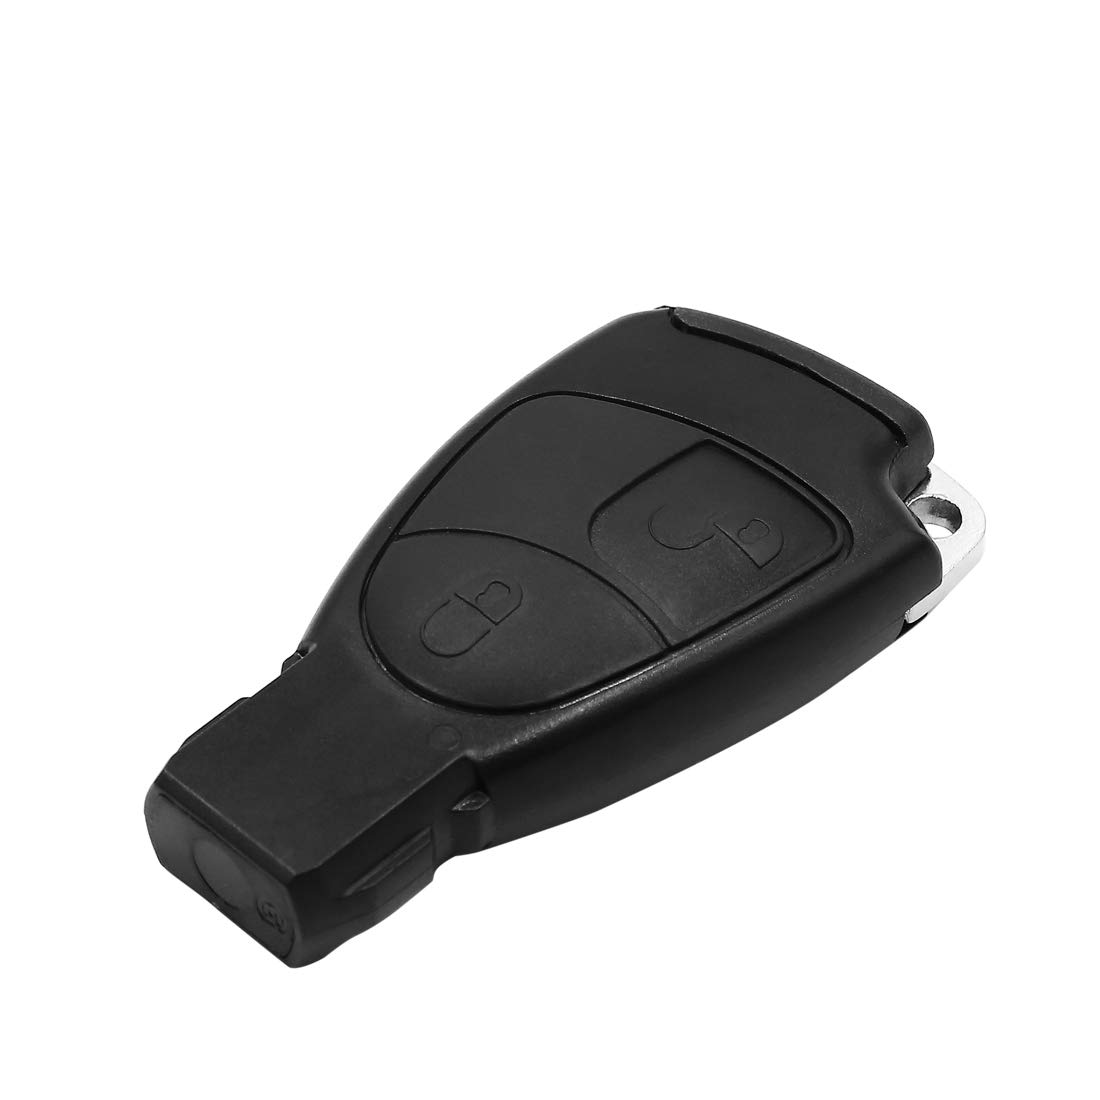 uxcell 2 Button Car Remote Key Fob Case Shell Cover with Uncut Blade for Mercedes Benz